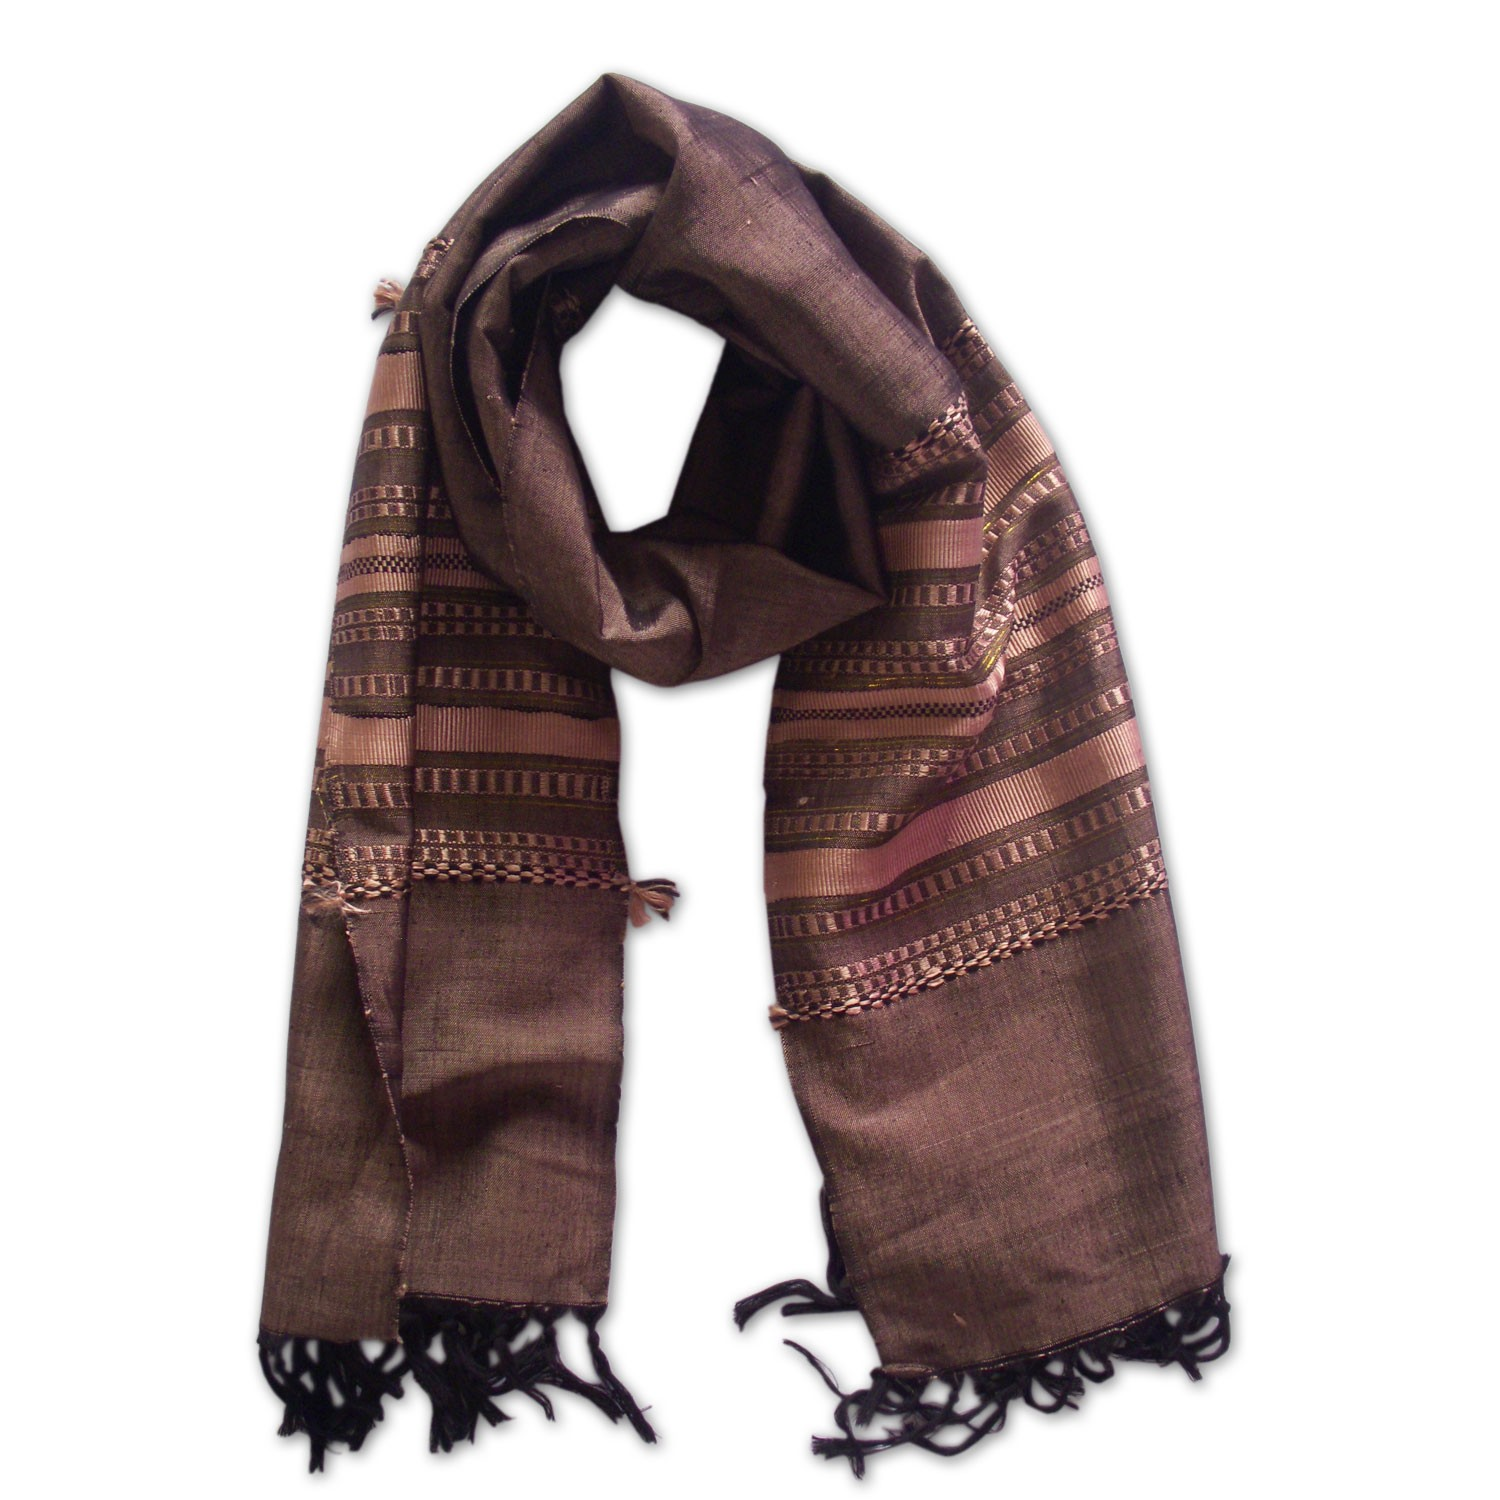 Scarves for Women If you're looking for an accessory that will make your outfit pop while also keeping your neck warm, look no further! Our fashion scarves are perfect for any woman looking to find a go-to accessory that will compliment every outfit.